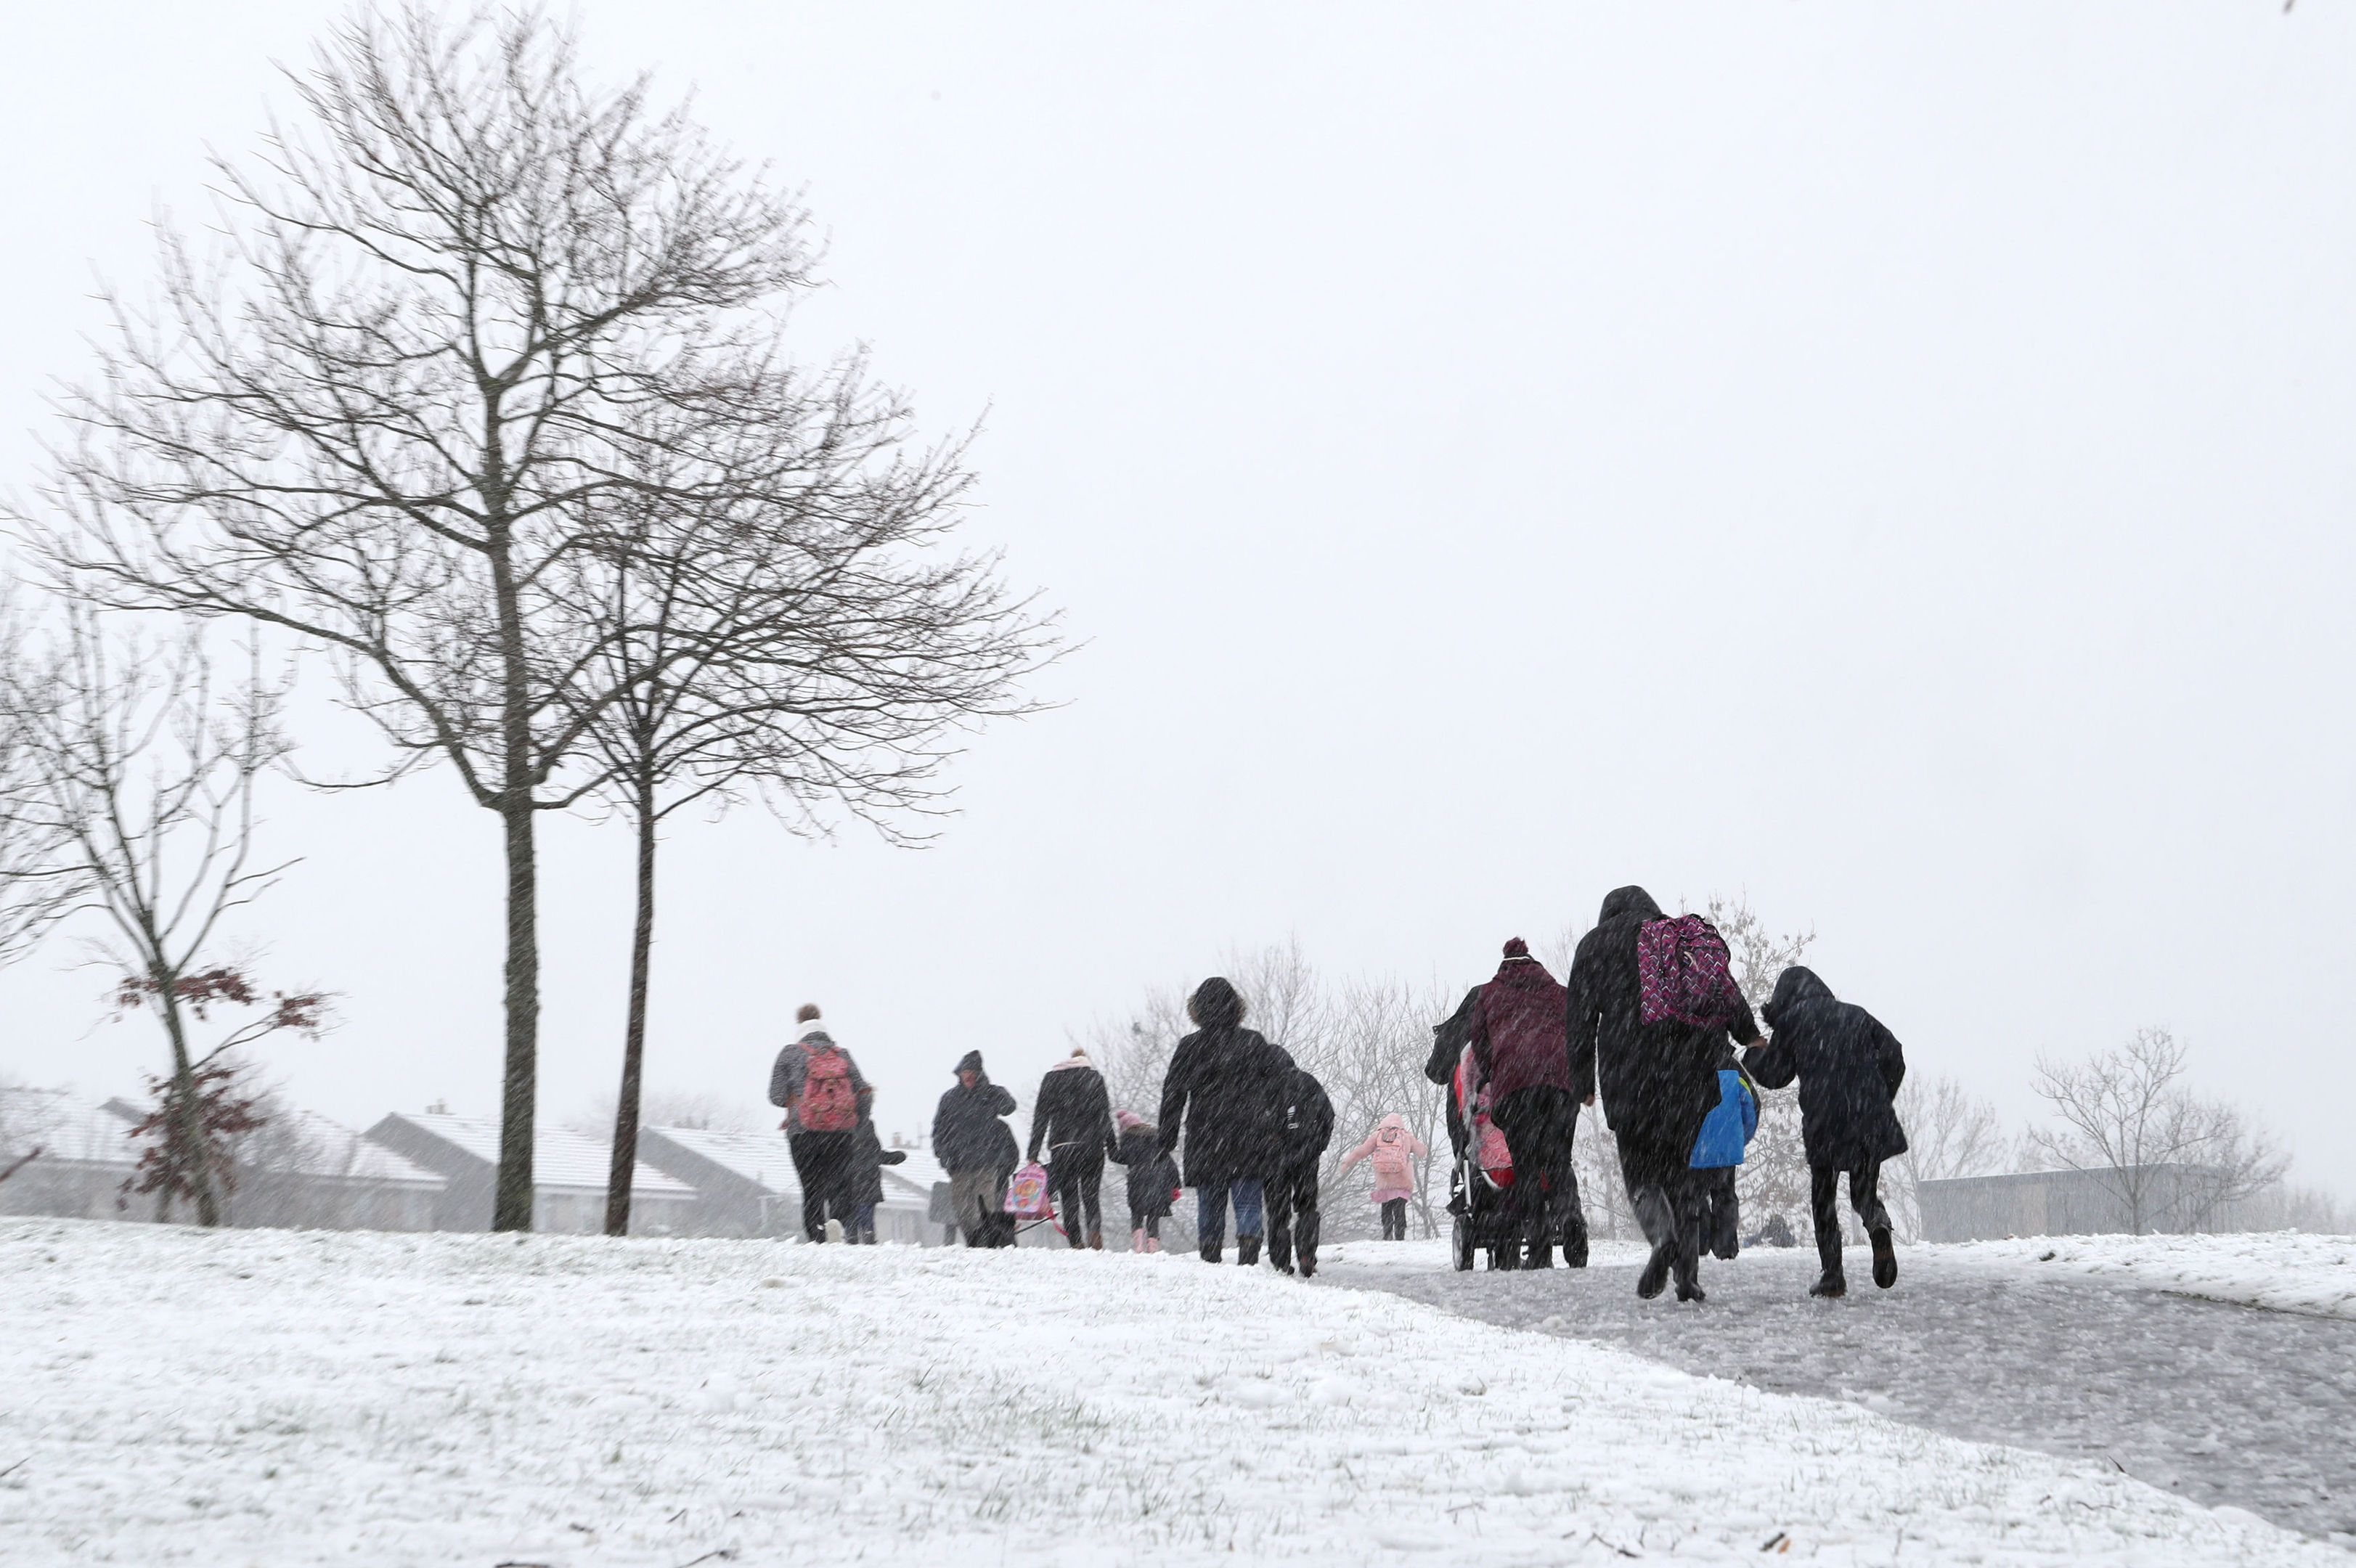 People make their way through the snow in Mauricewood Park in Penicuik, Midlothian, as flights have been cancelled and commuters were warned they faced delays after Storm Doris reached nearly 90mph (Jane Barlow/PA Wire)